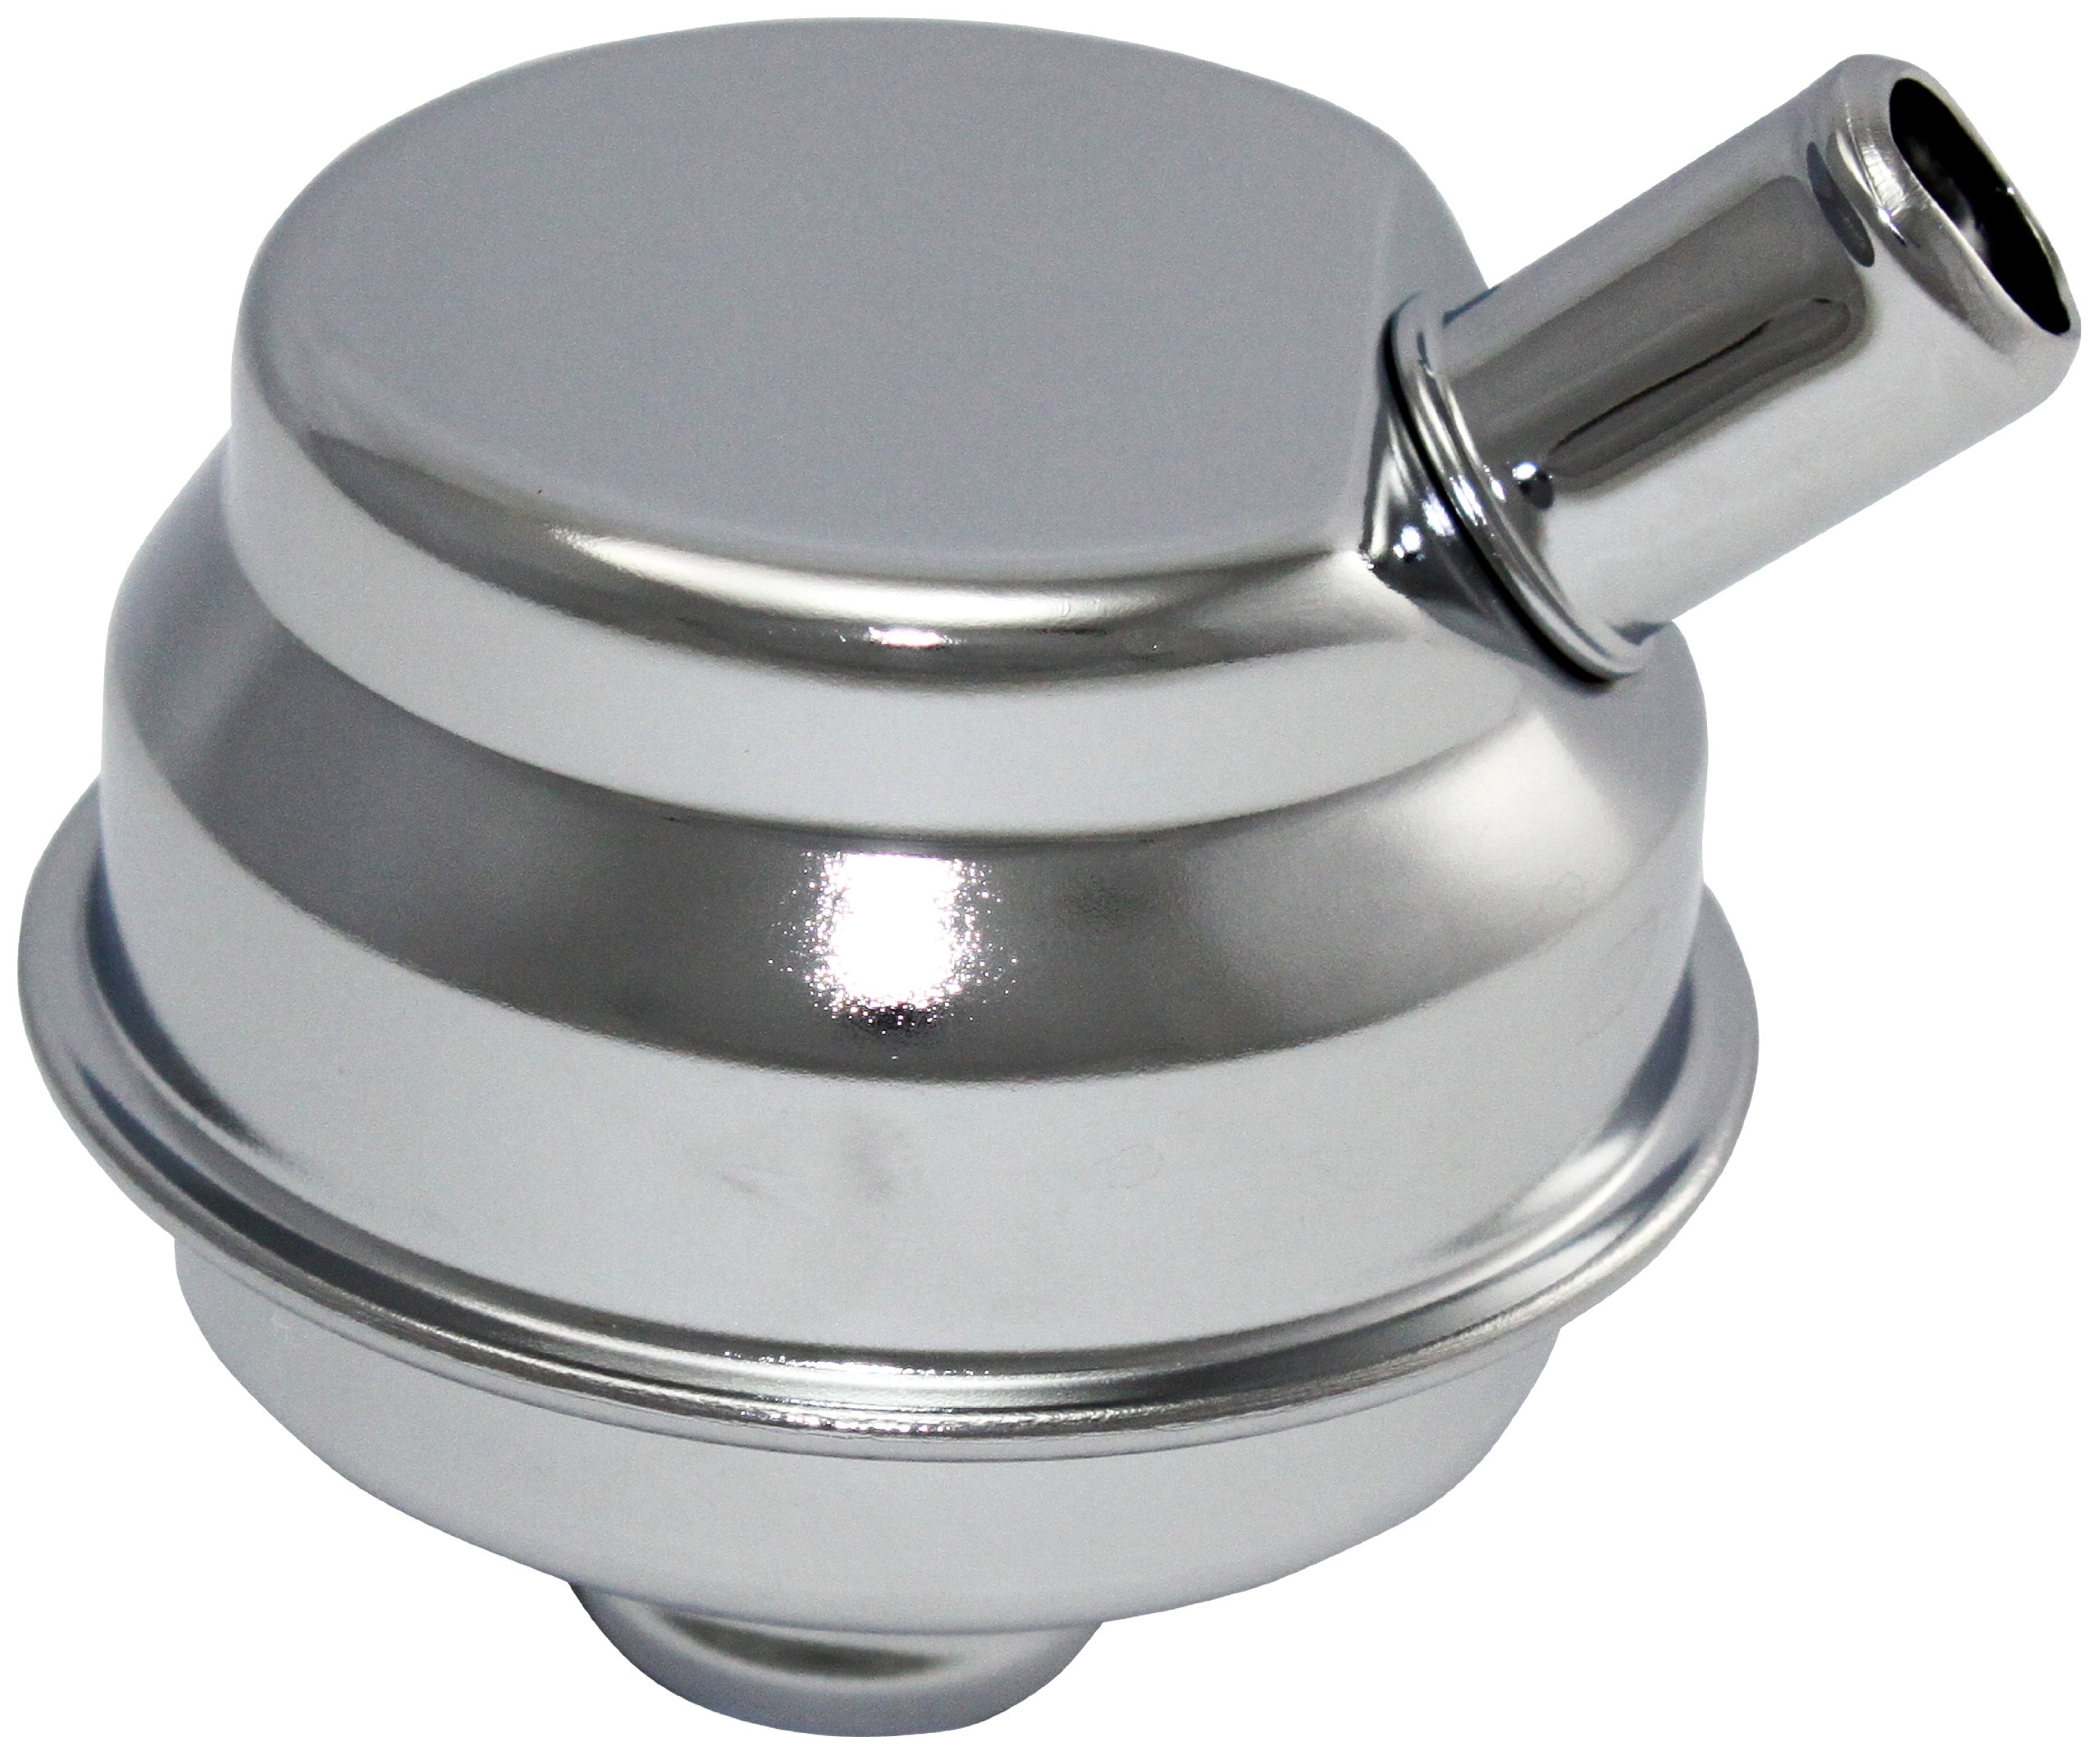 """Mota Performance A70160 Chrome Plated Push-In Valve Cover Oil Filler Breather Mopar Style 1"""""""" Stem with 5/8"""""""" Vent Tube"""